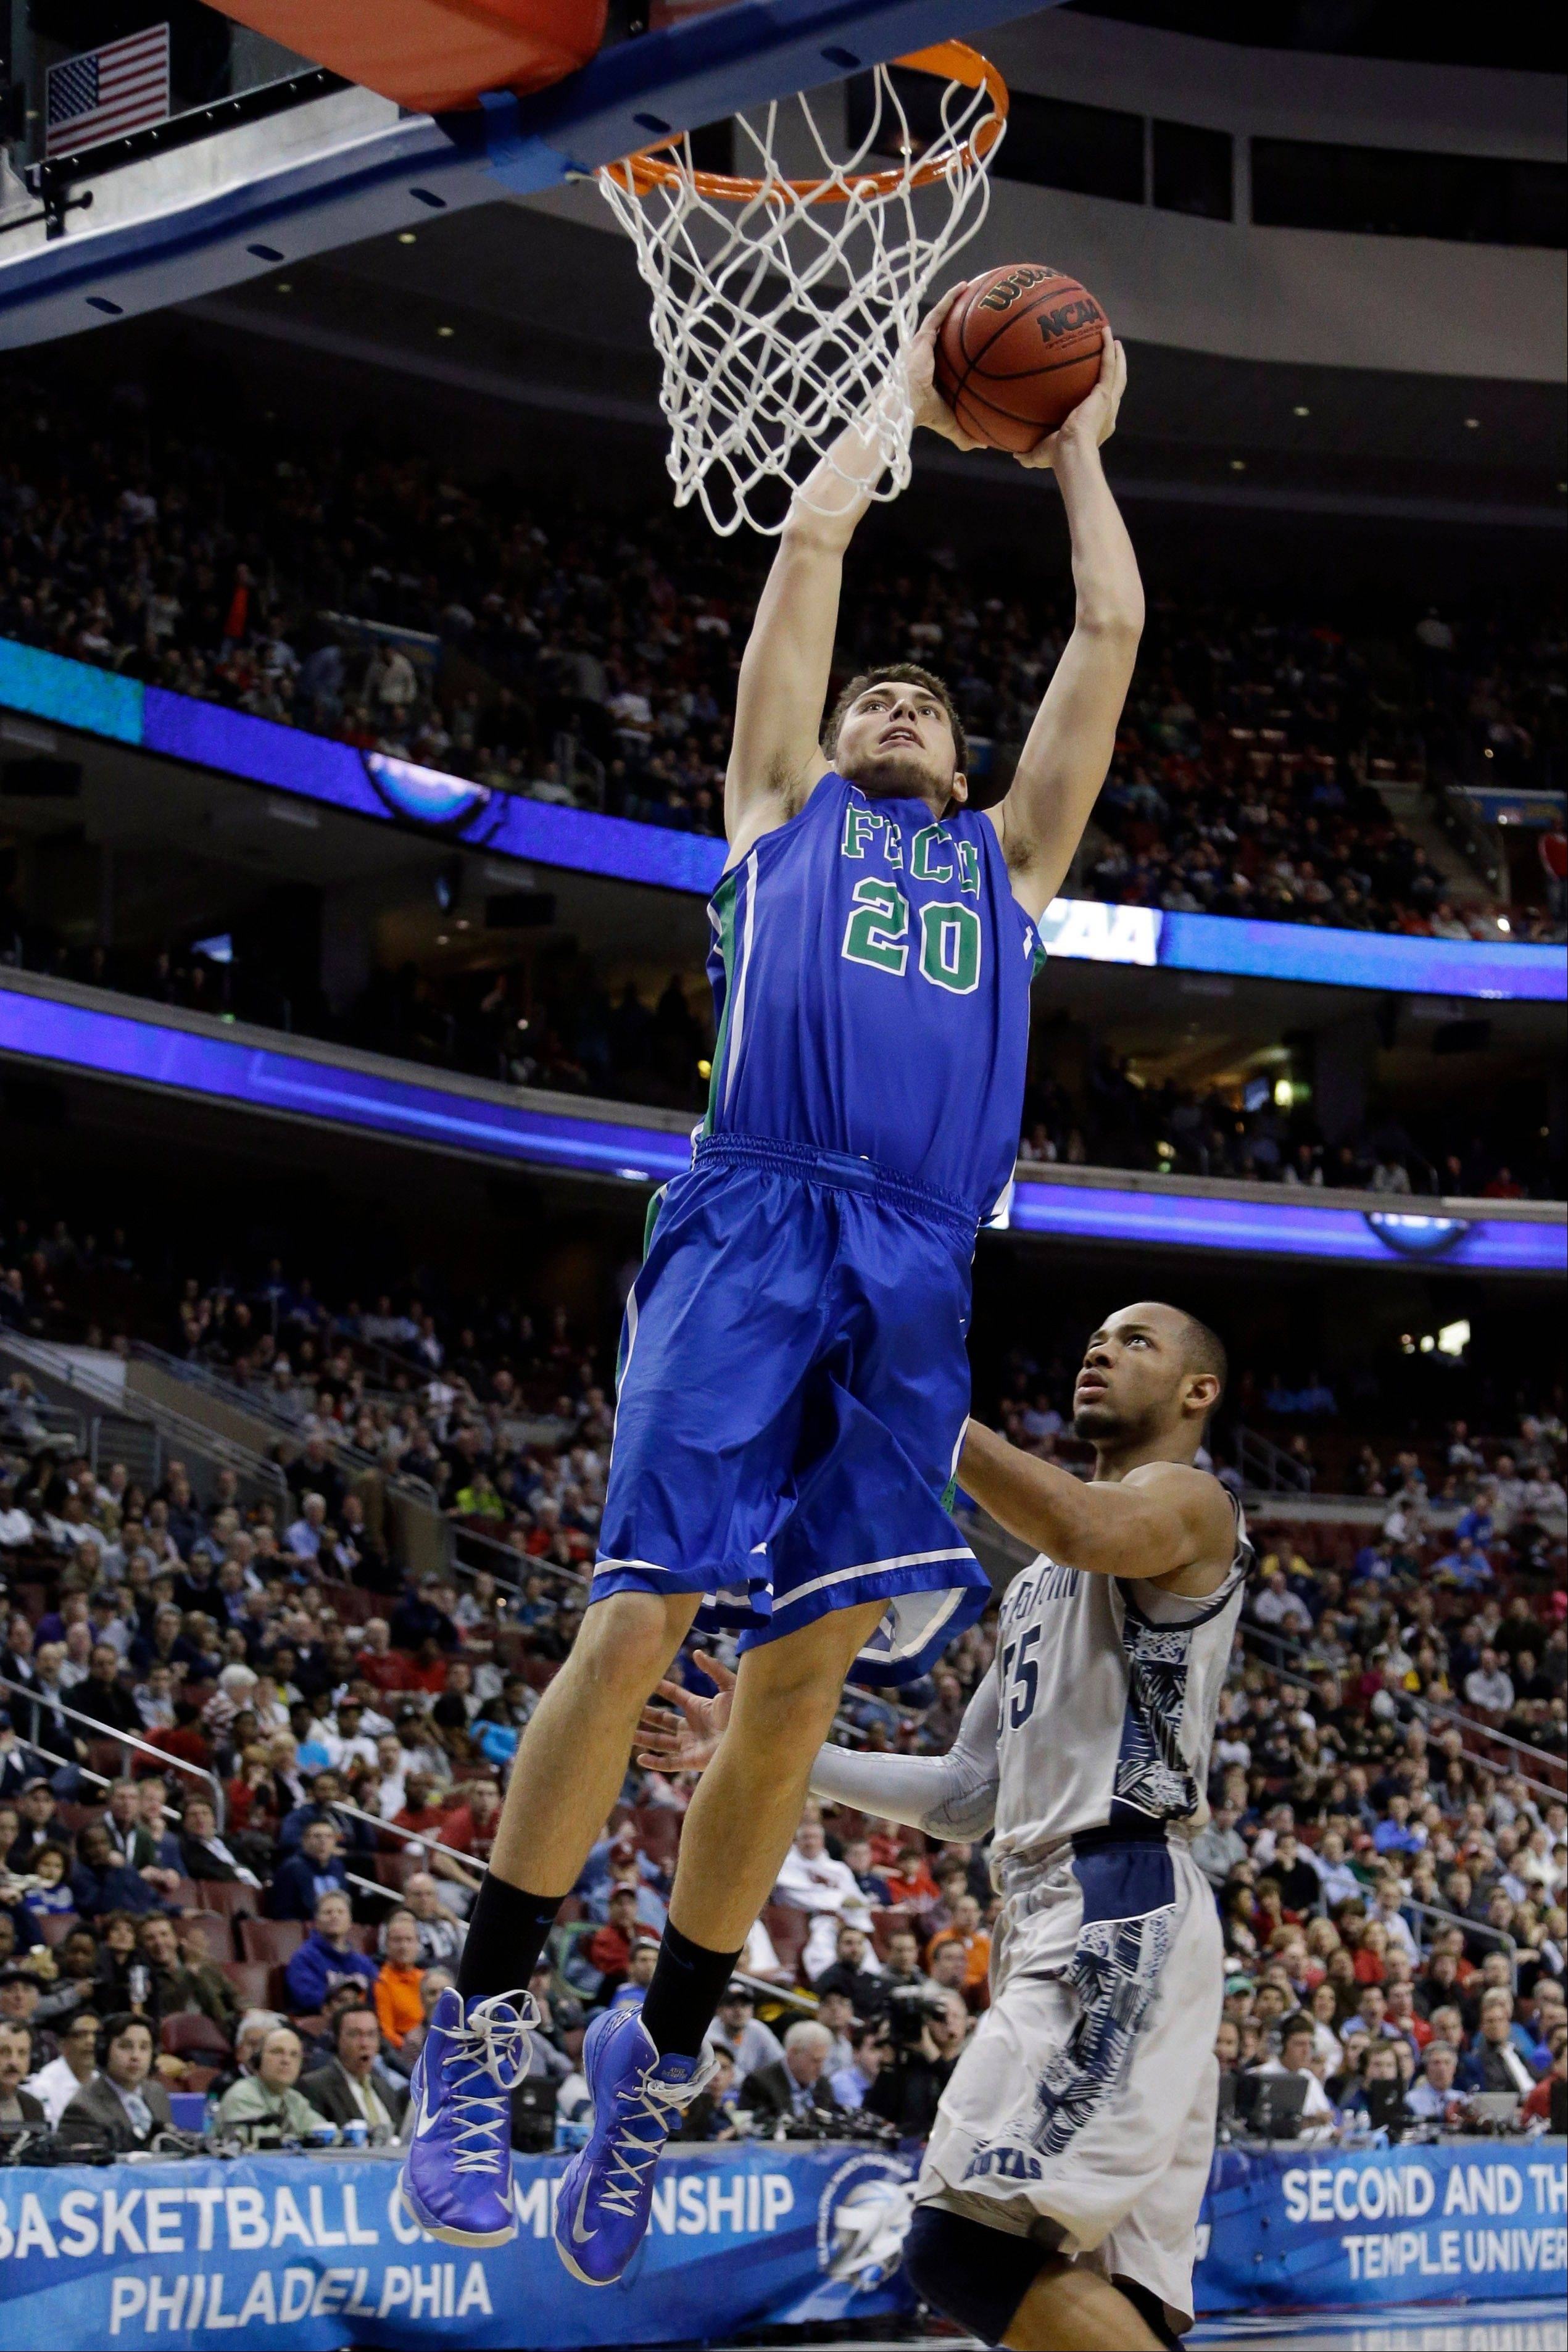 Florida Gulf Coast's Chase Fieler goes up for a dunk against Georgetown's Jabril Trawick during the second half of a second-round game of the NCAA college basketball tournament, Friday, March 22, 2013, in Philadelphia.